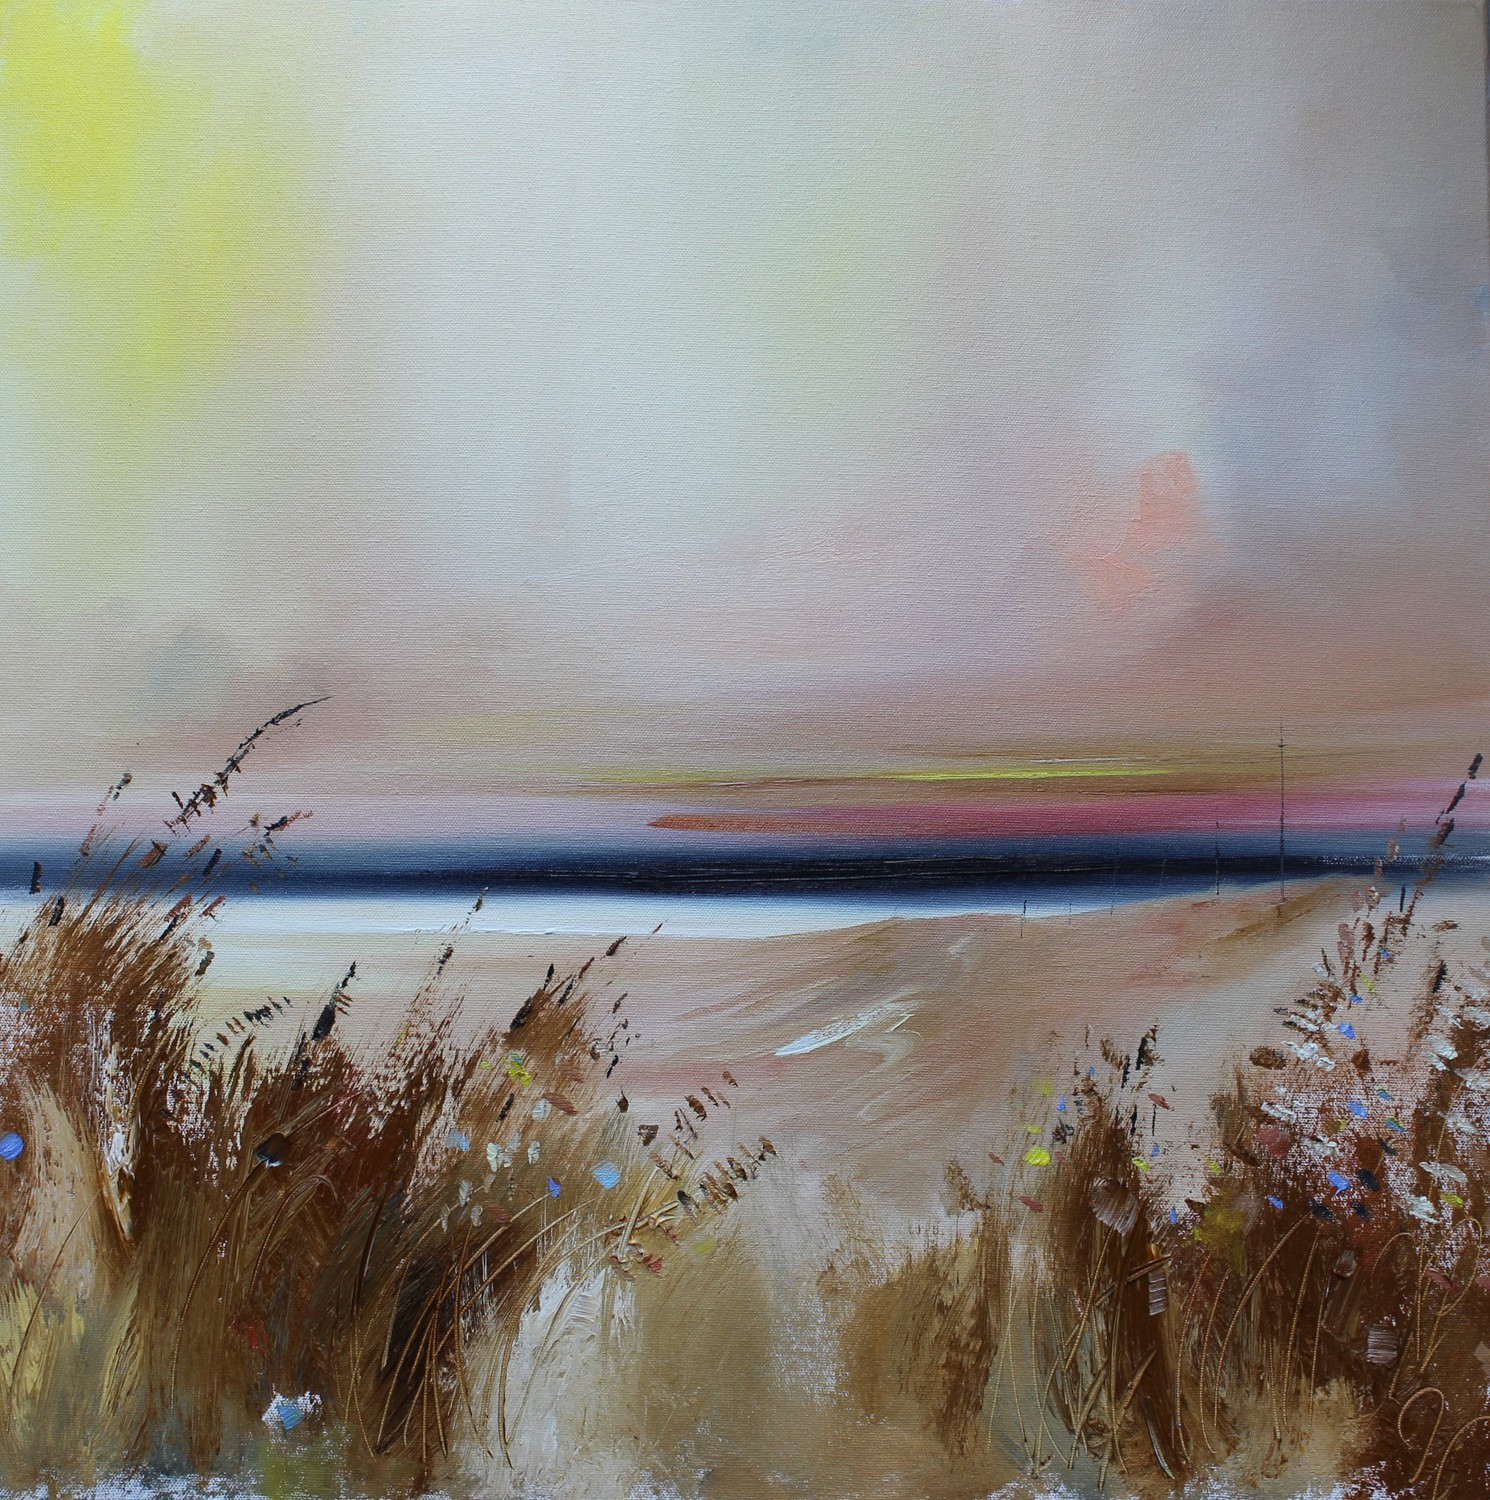 'In the Summertime' by artist Rosanne Barr